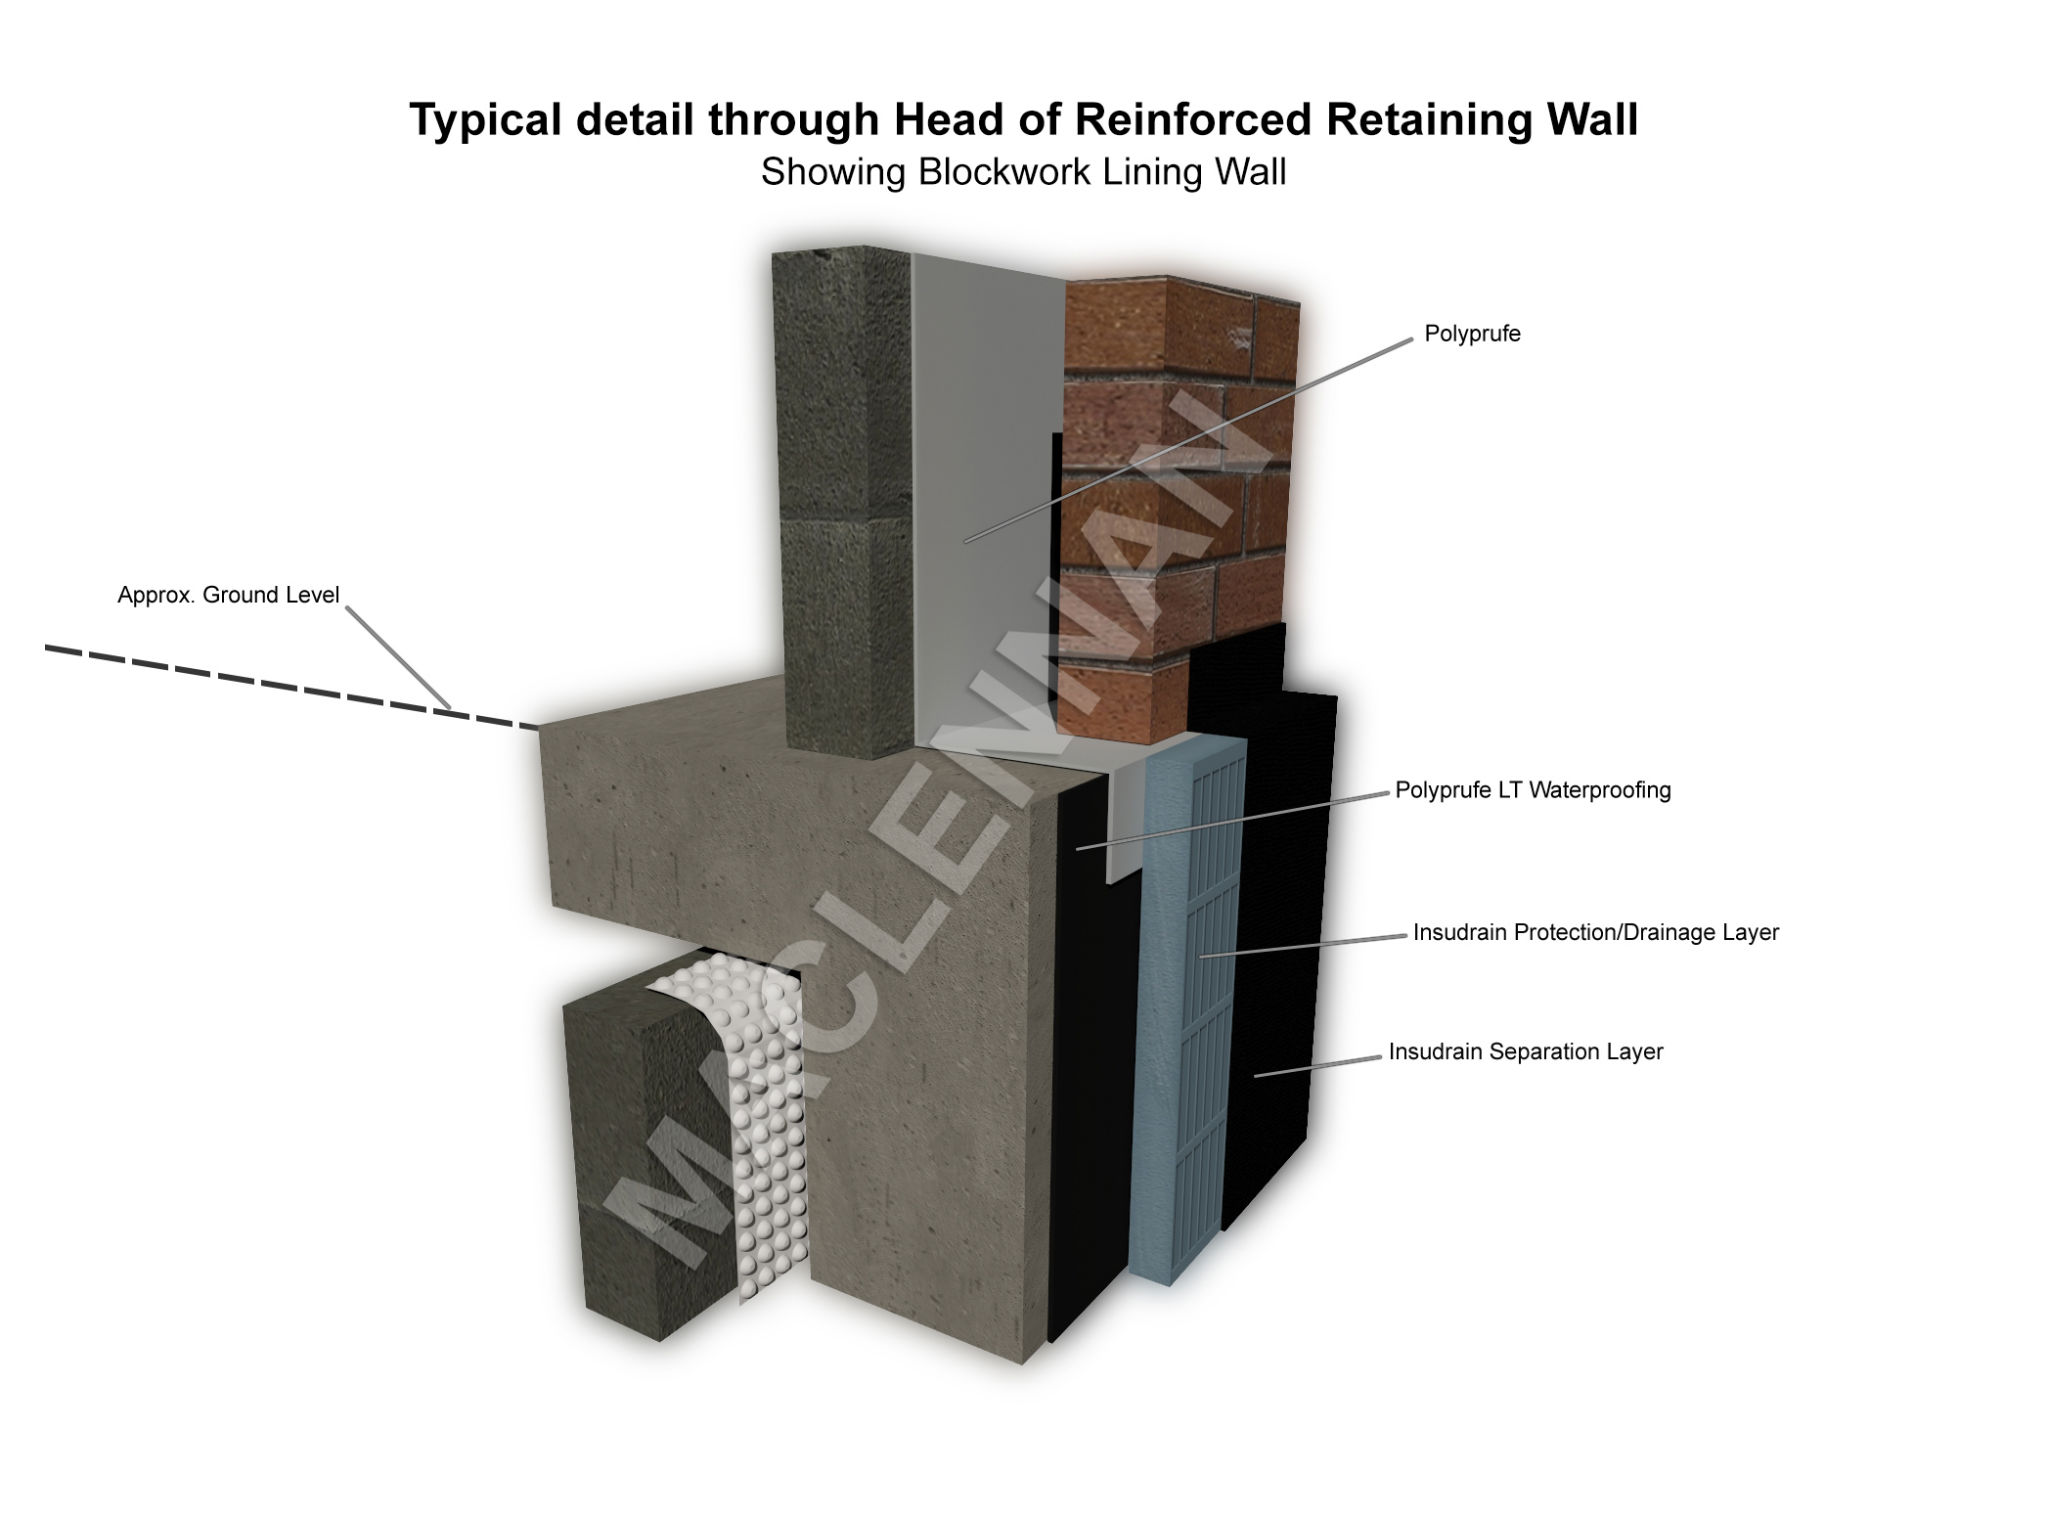 3D drawing typical detail through Head of retaining wall